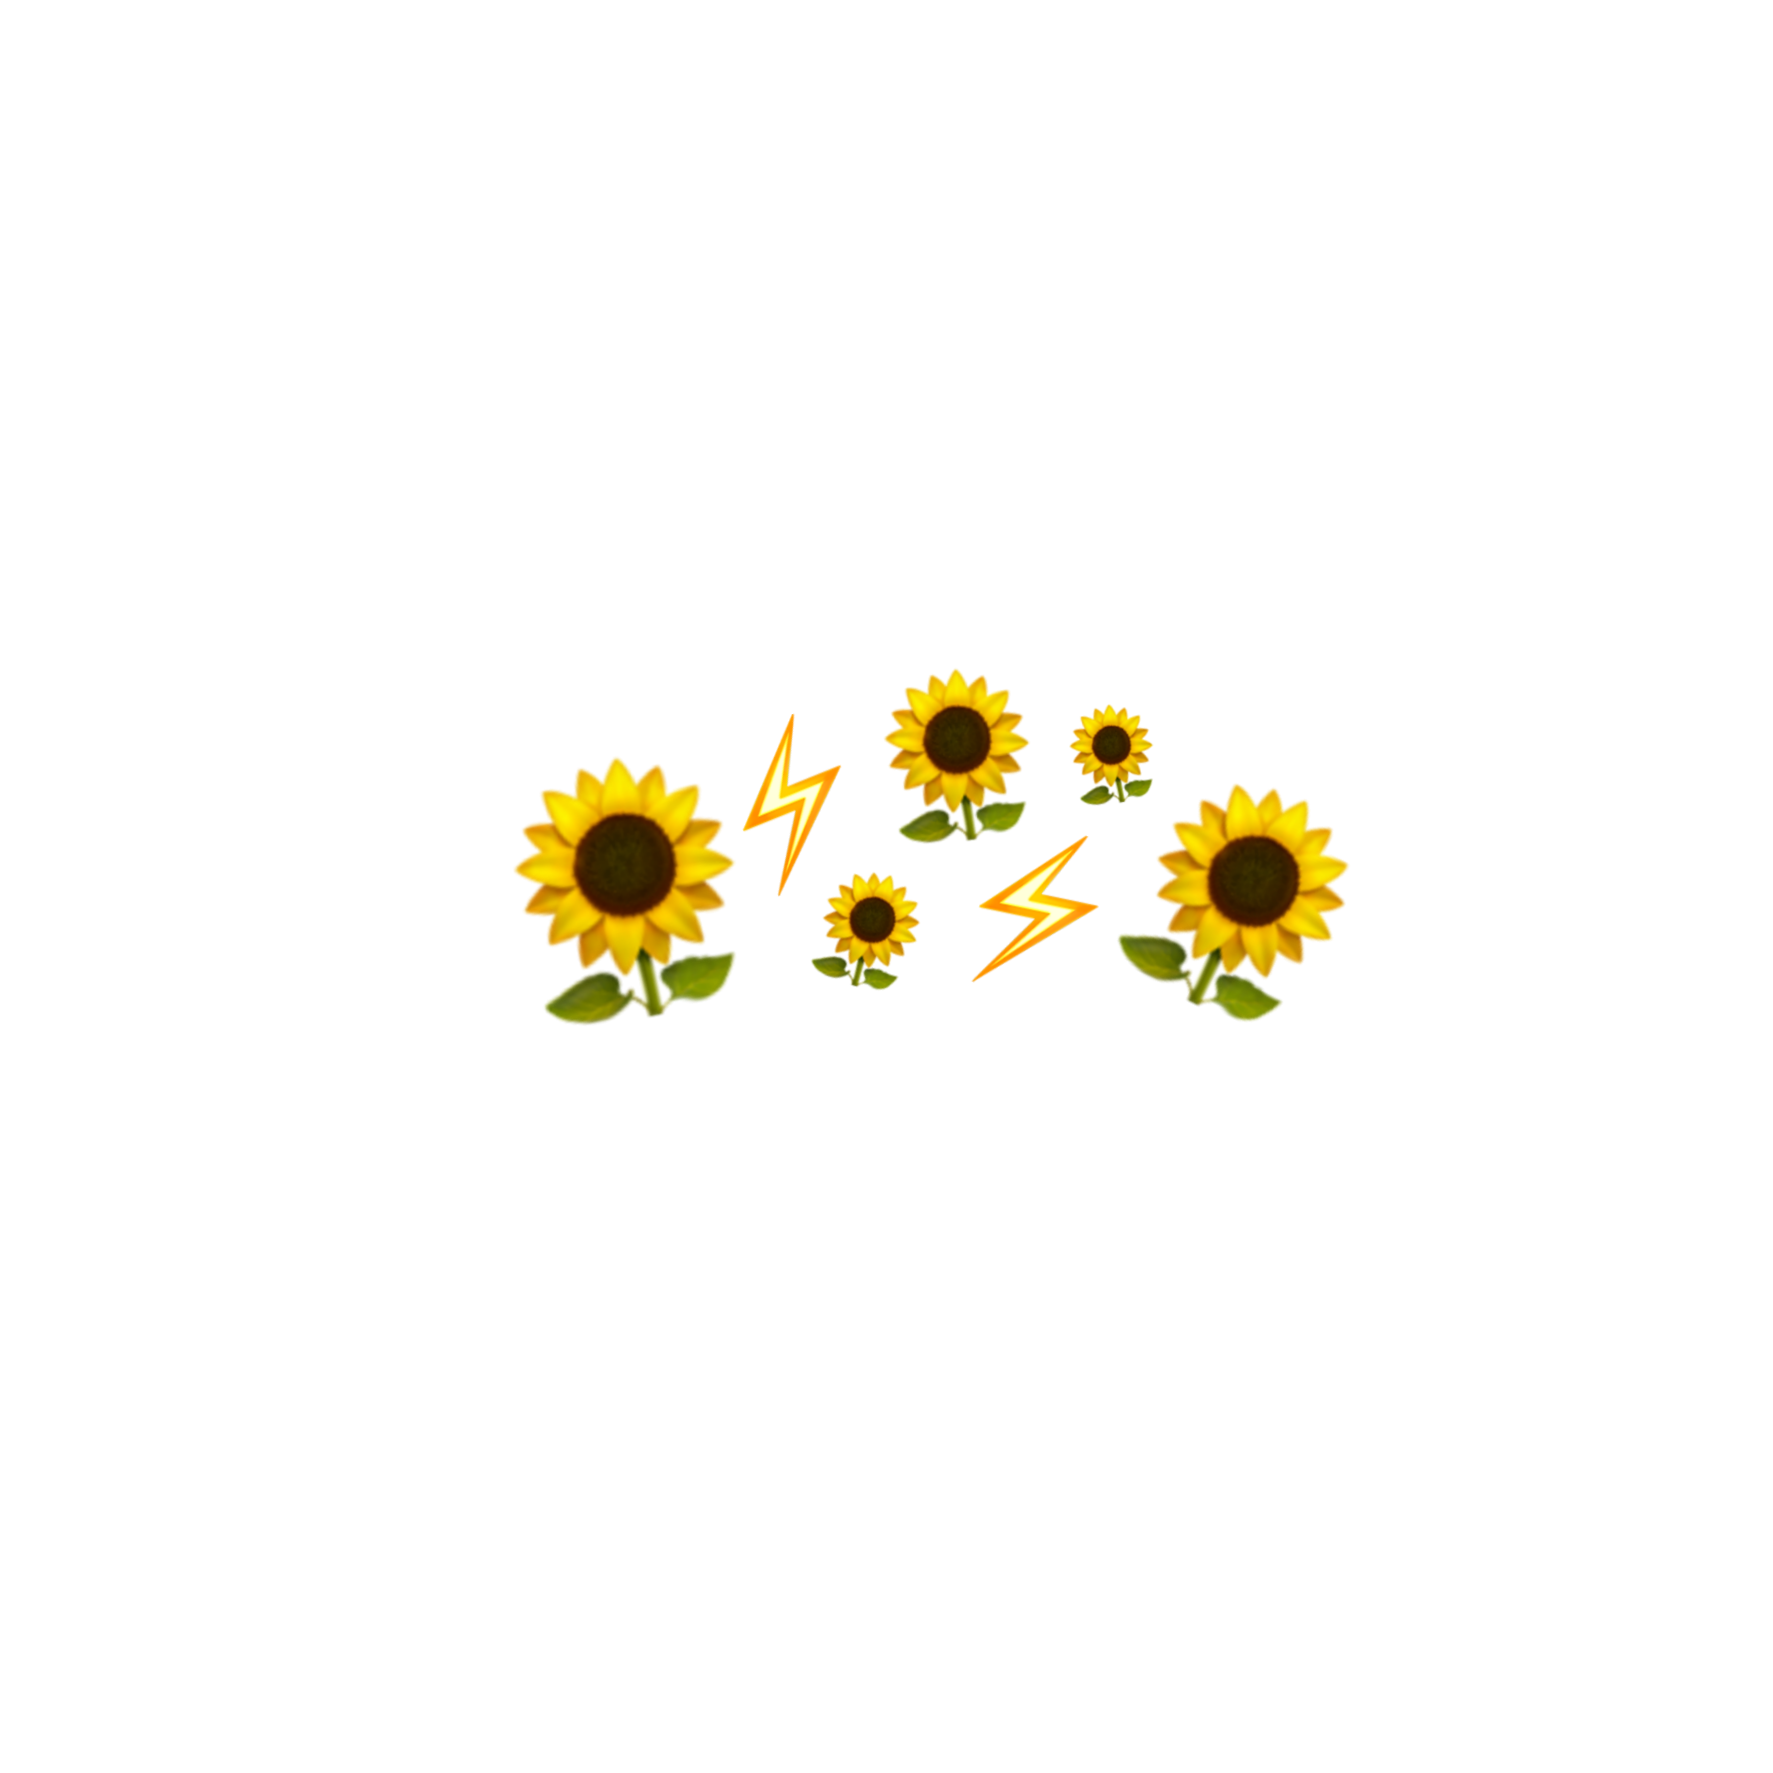 Yellow Flowers Png Aesthetic